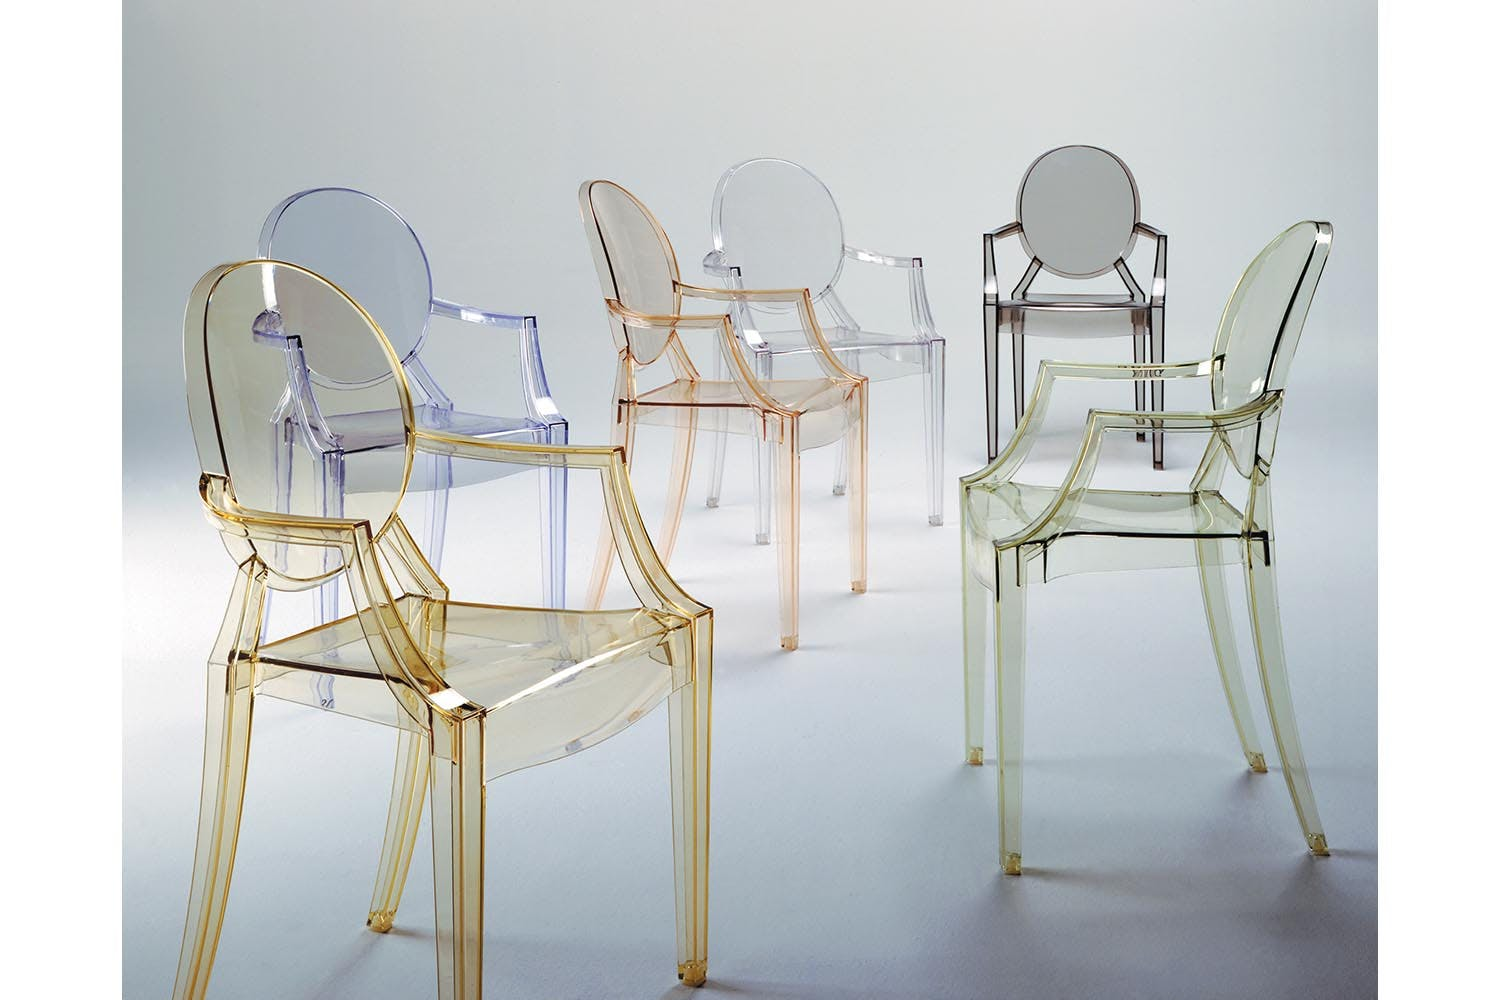 louis ghost chair with arms by philippe starck for kartell  space  - share